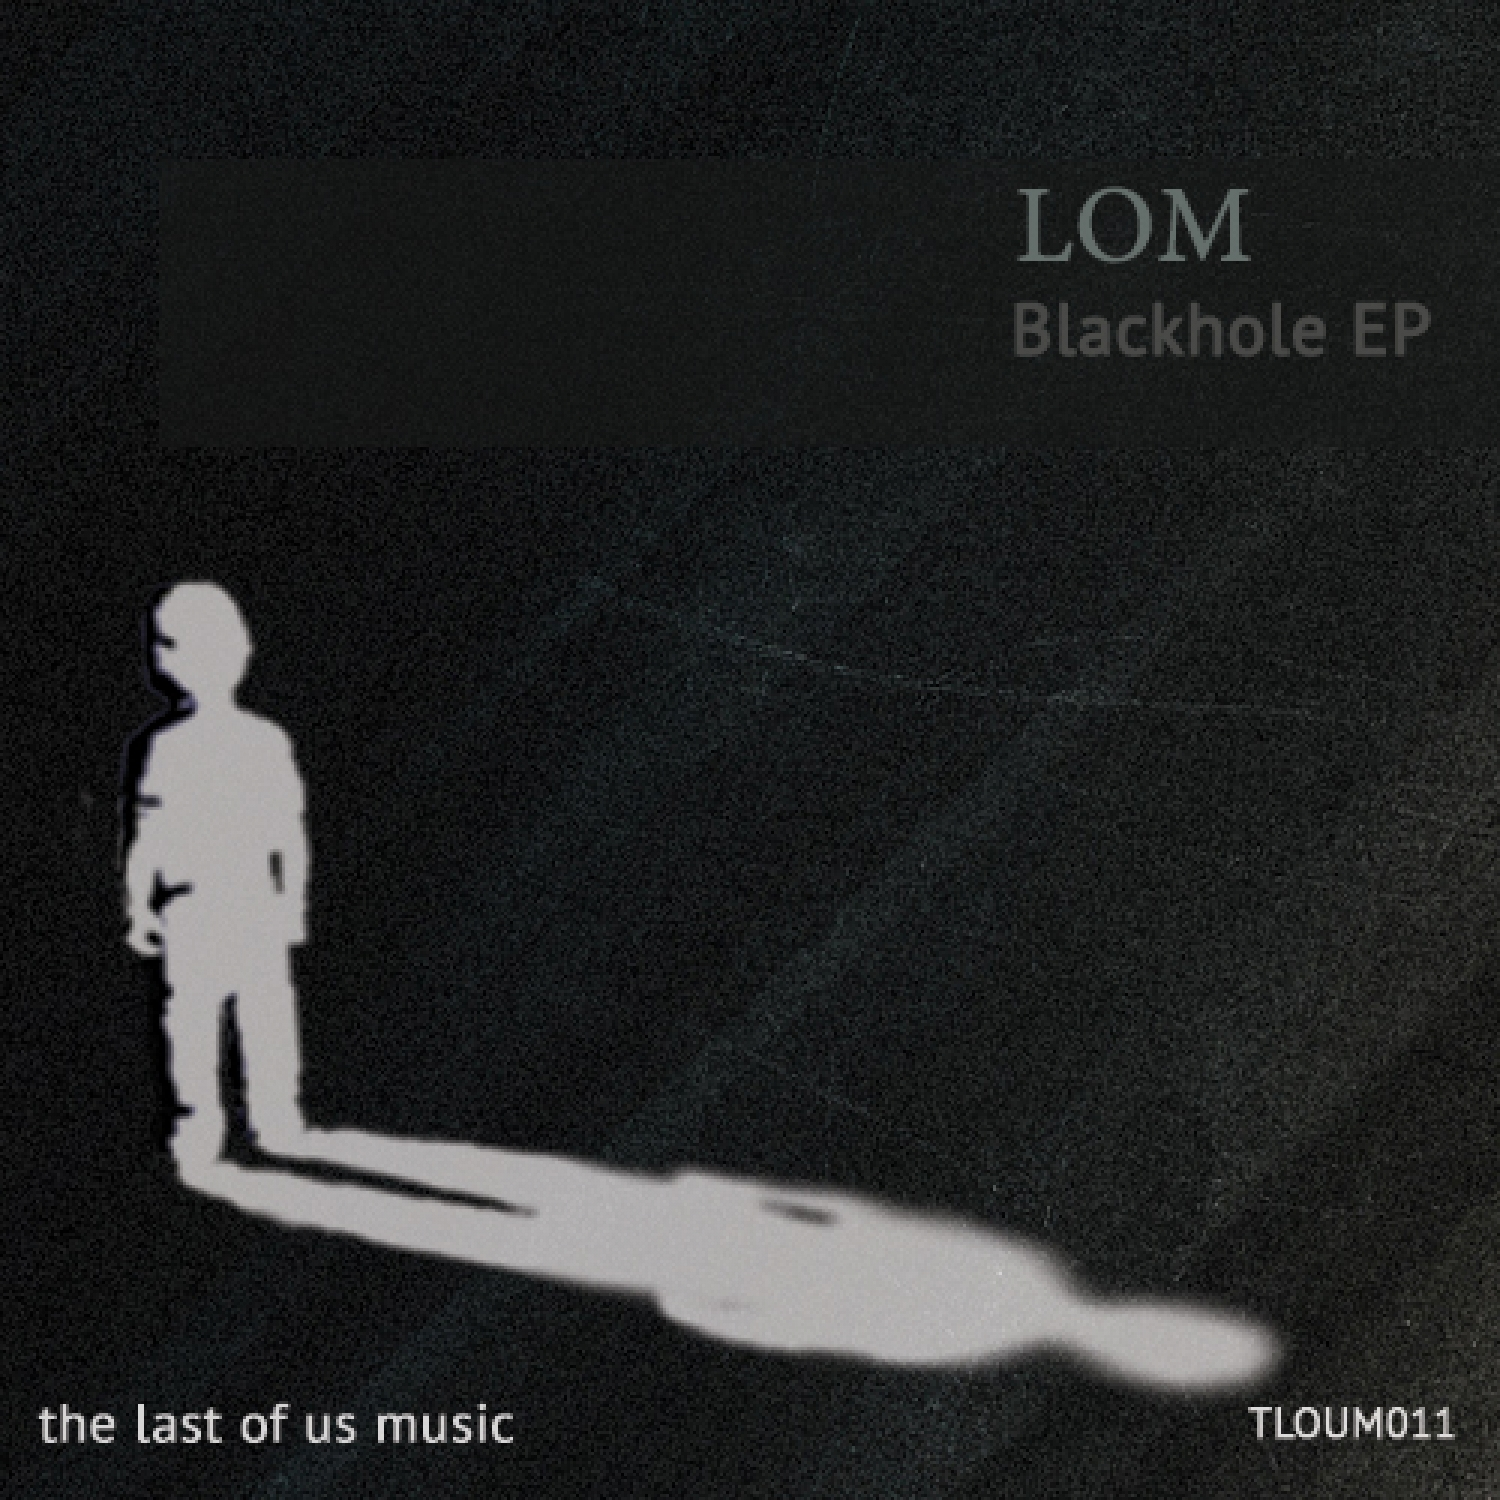 LOM - Blackhole EP (The Last Of Us Music)